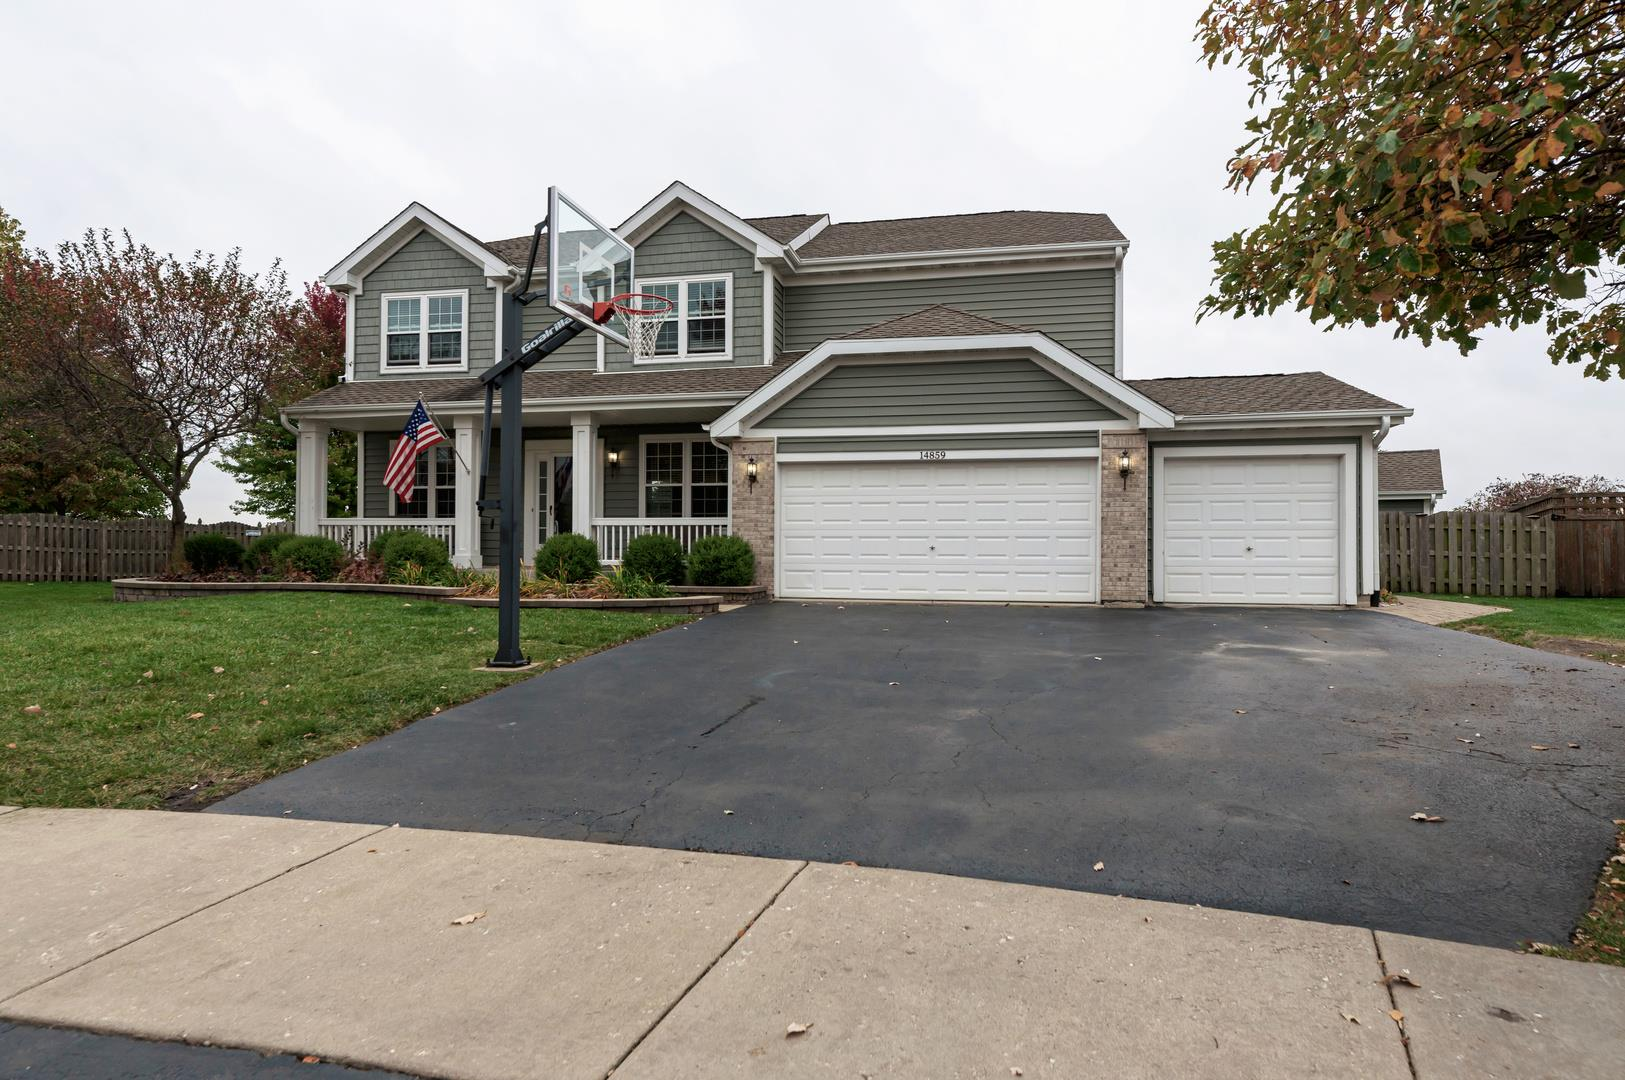 14859 INDEPENDENCE Court, Plainfield, IL 60544 - #: 10856203